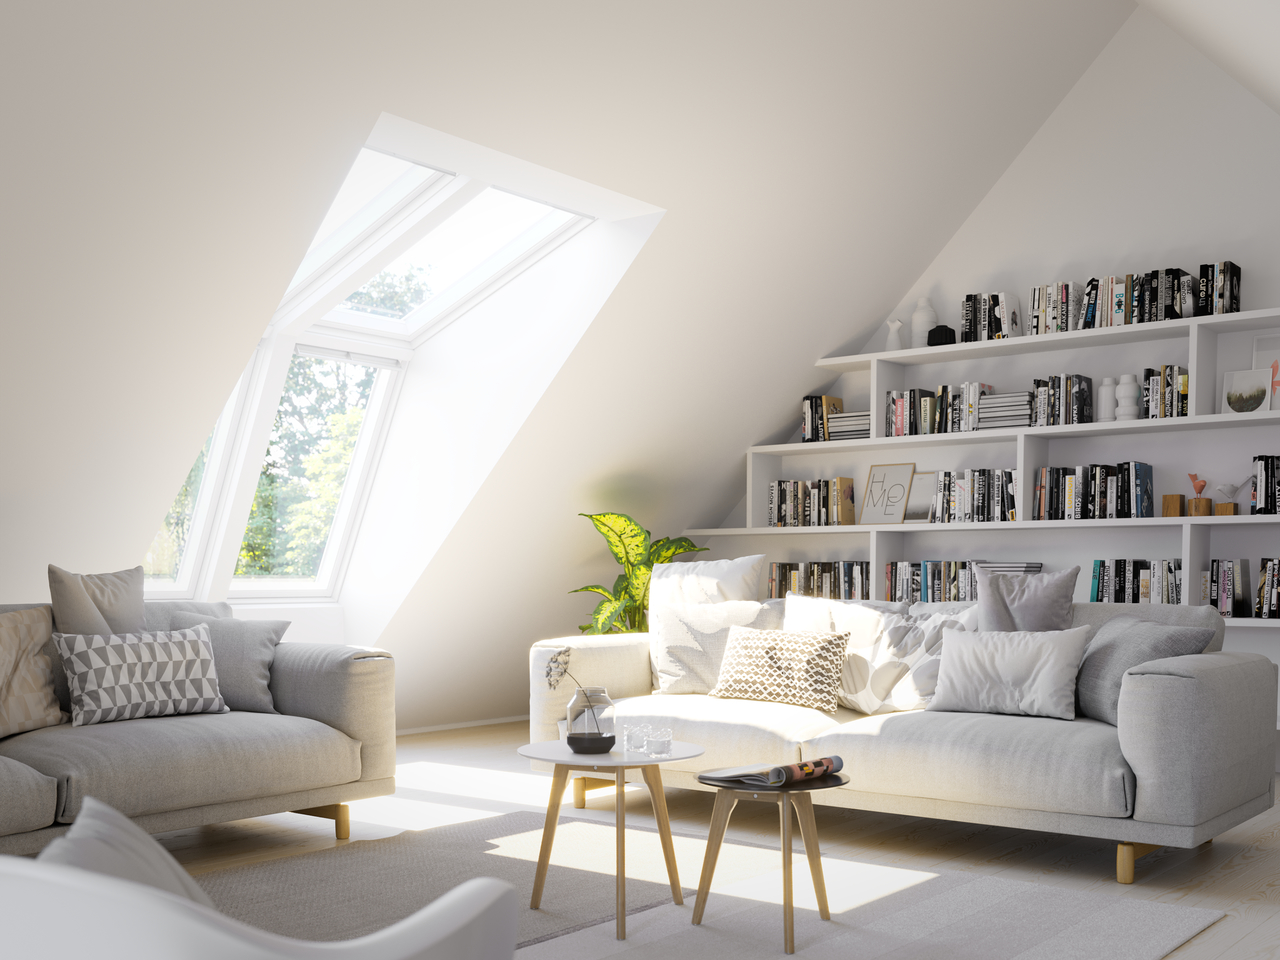 active house wohnen mit licht und luft. Black Bedroom Furniture Sets. Home Design Ideas